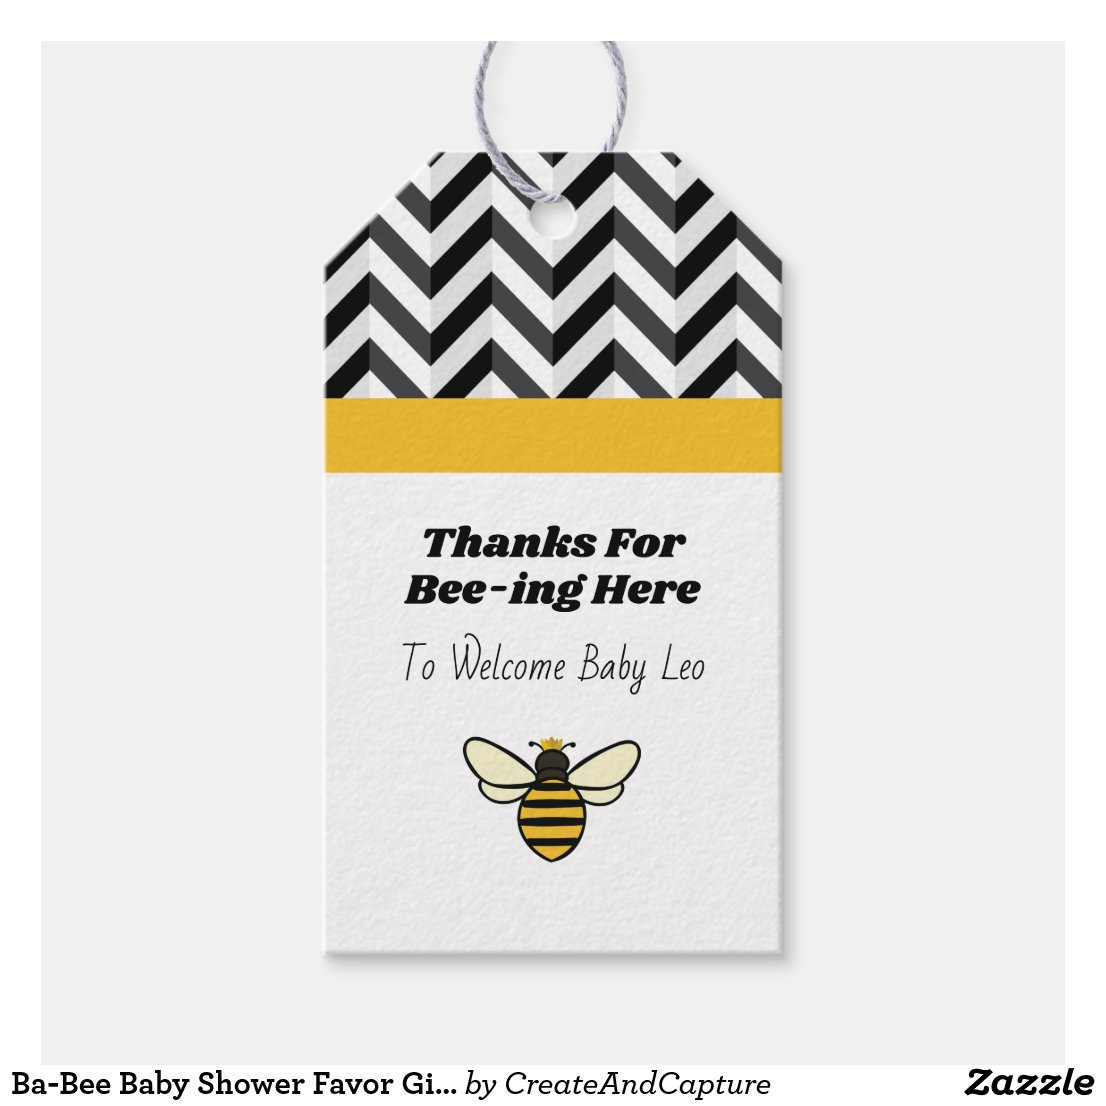 Ba-Bee Baby Shower Favor Gift Tags